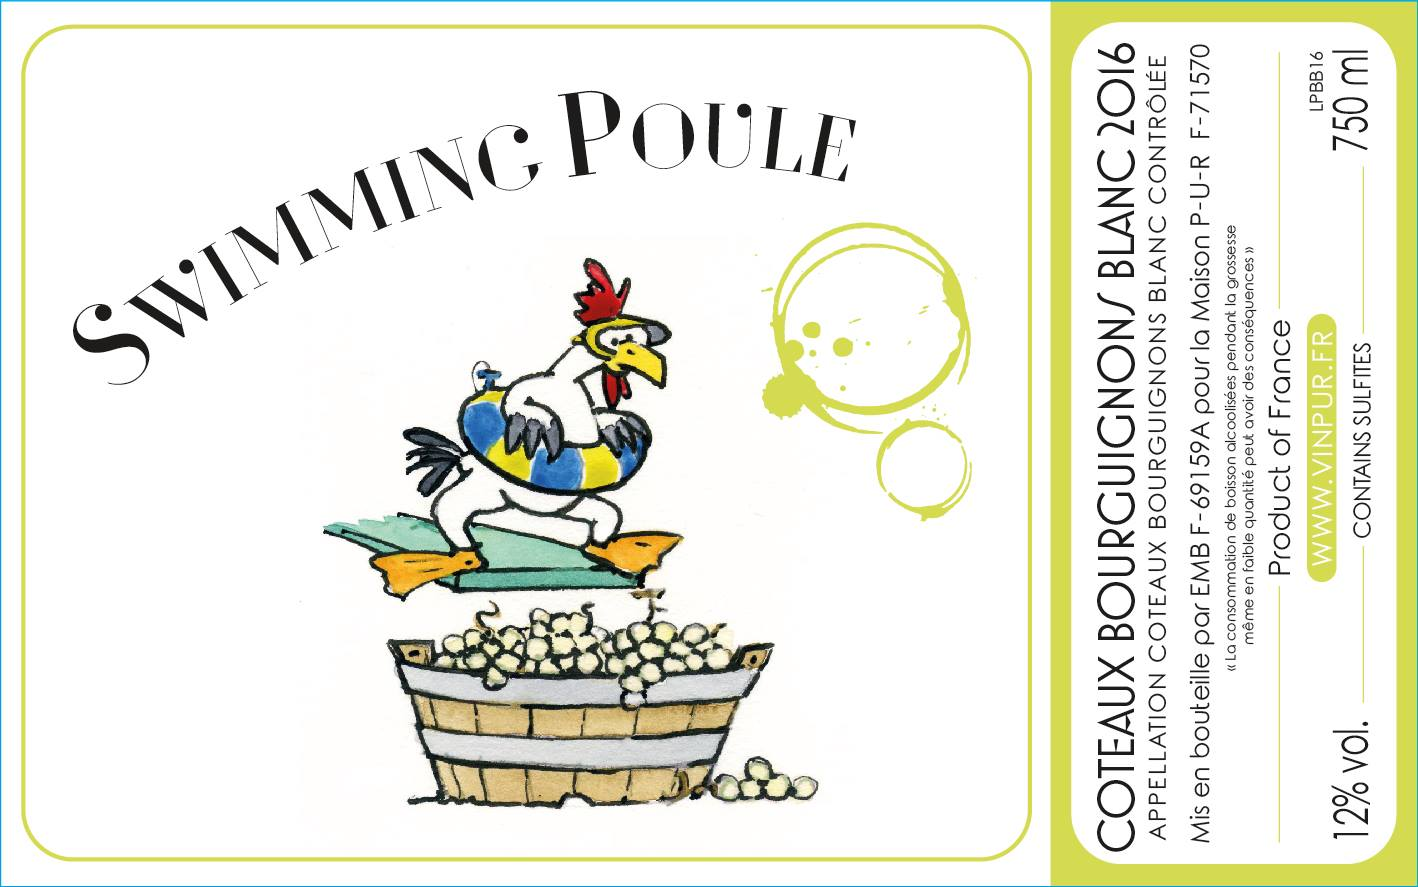 Swimming Poule - Vin Blanc Naturel - Coteaux Bourguignon - Cyril Alonso - PUR